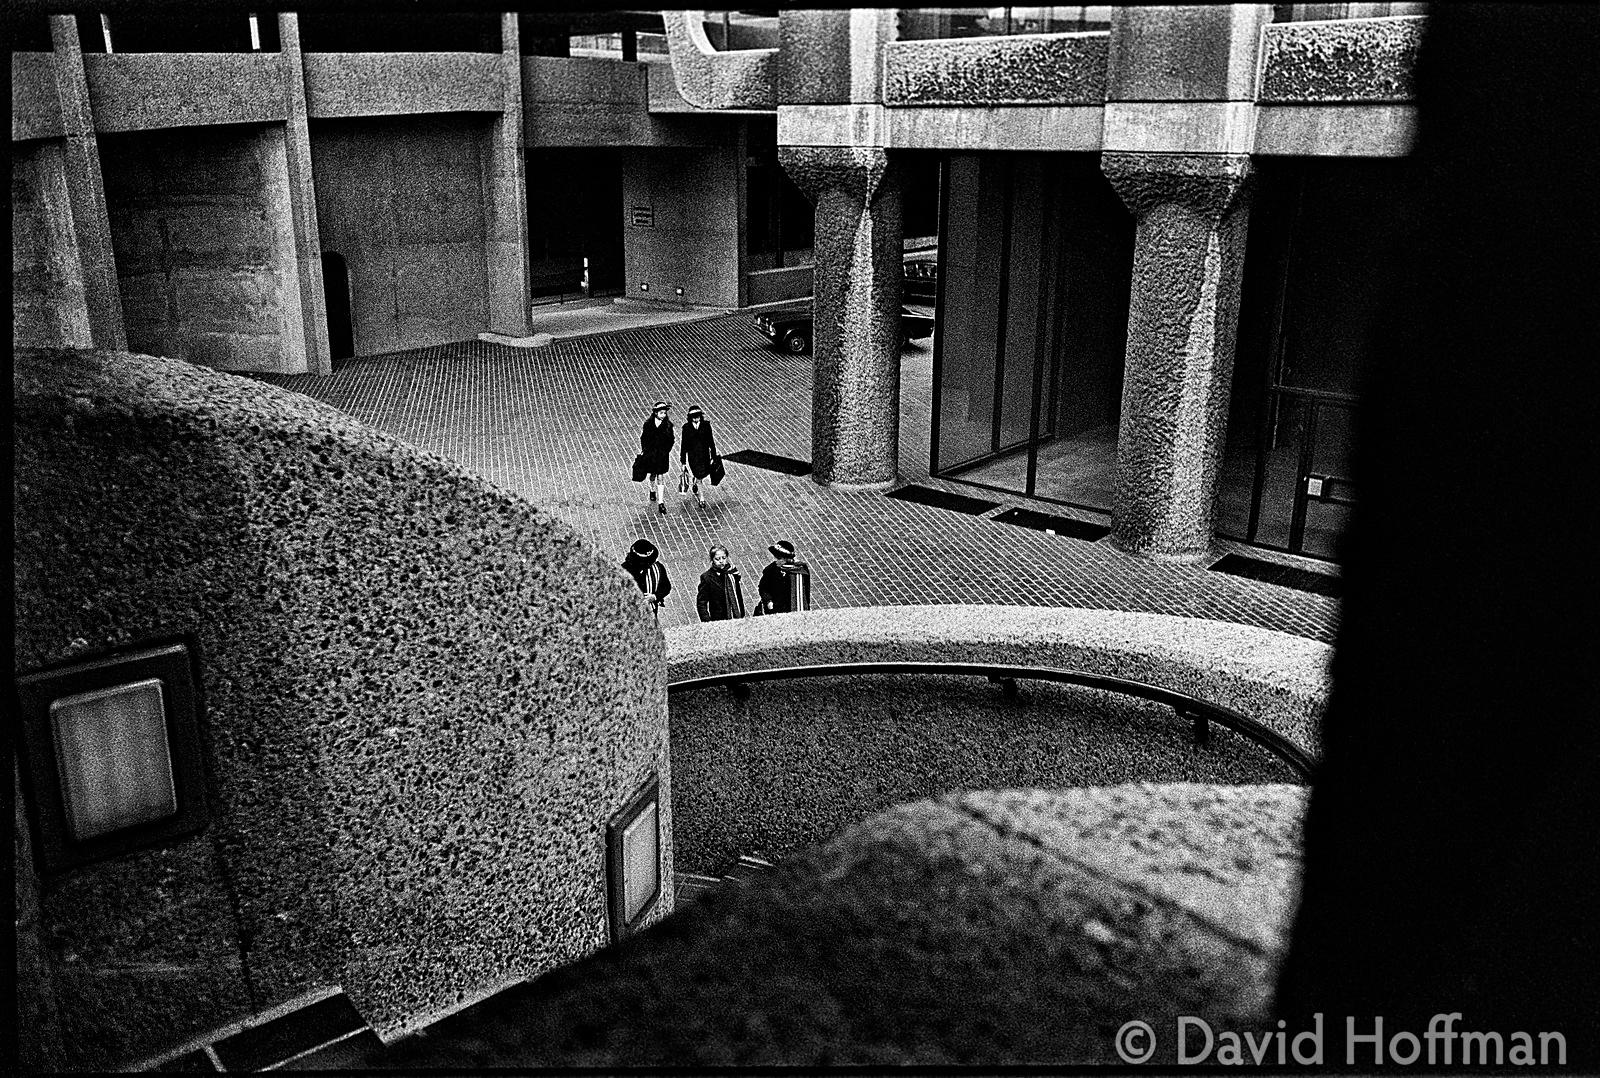 Barbican 1975 Photographs from around Brunswick Centre, London Wall and Barbican. Shot as college project in 1975. I had some...